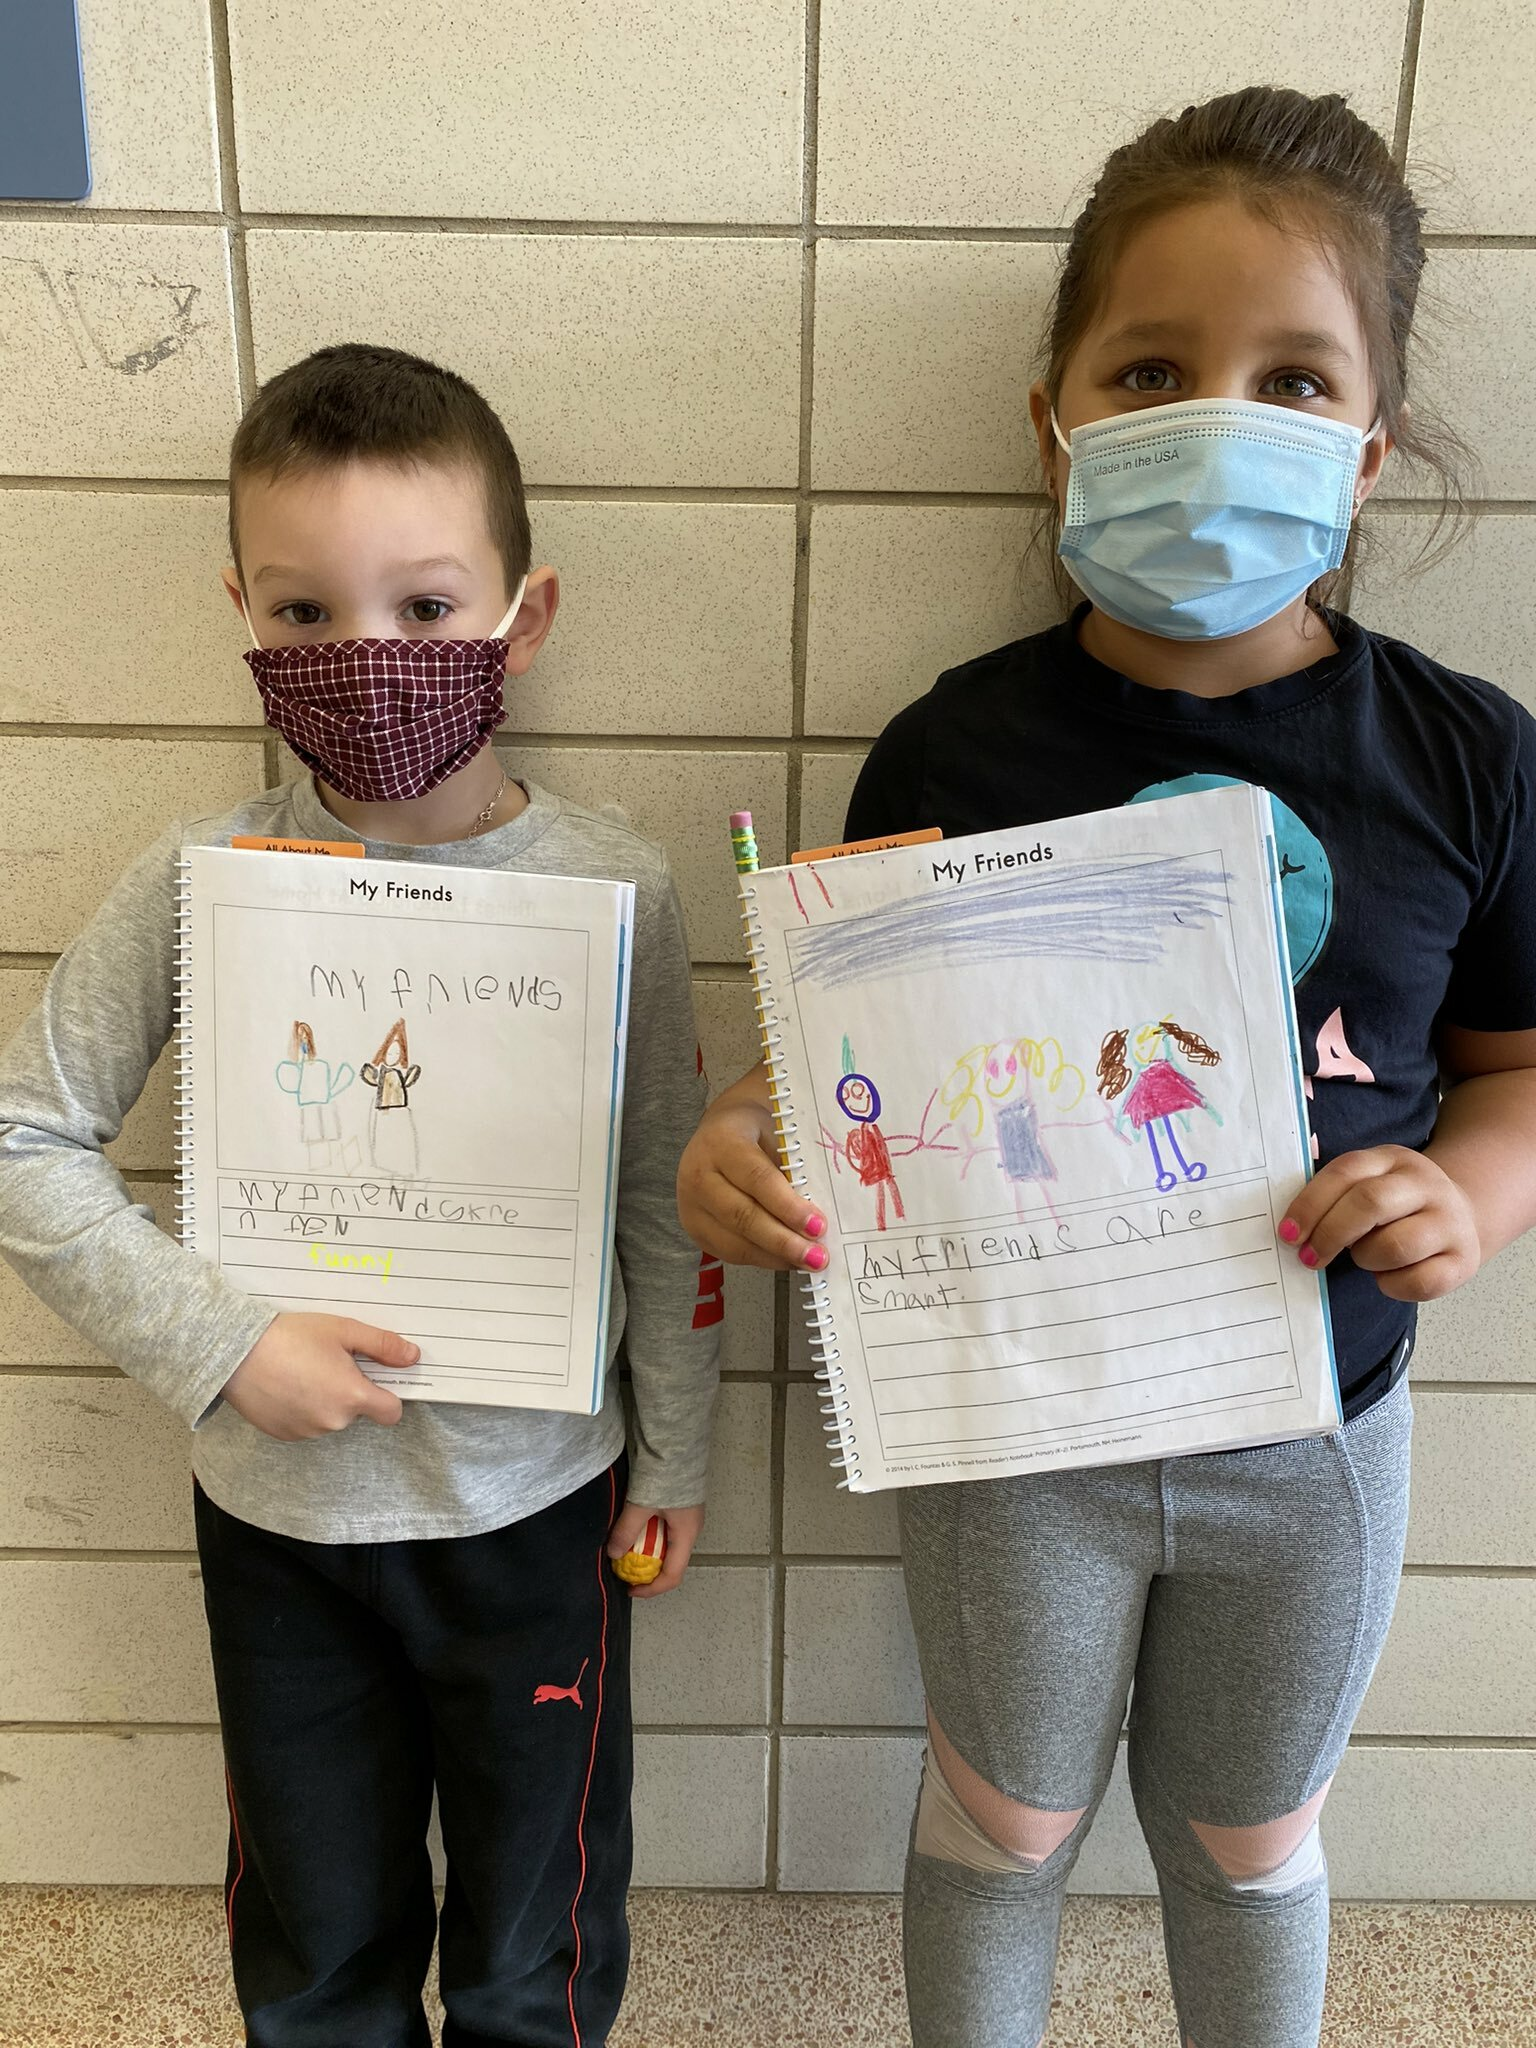 Morgan Tiska's kindergarten class at Hampton Bays Elementary School practiced their literary skills recently by writing about the friends they have made this school year. They also drew colorful images to accompany their work.